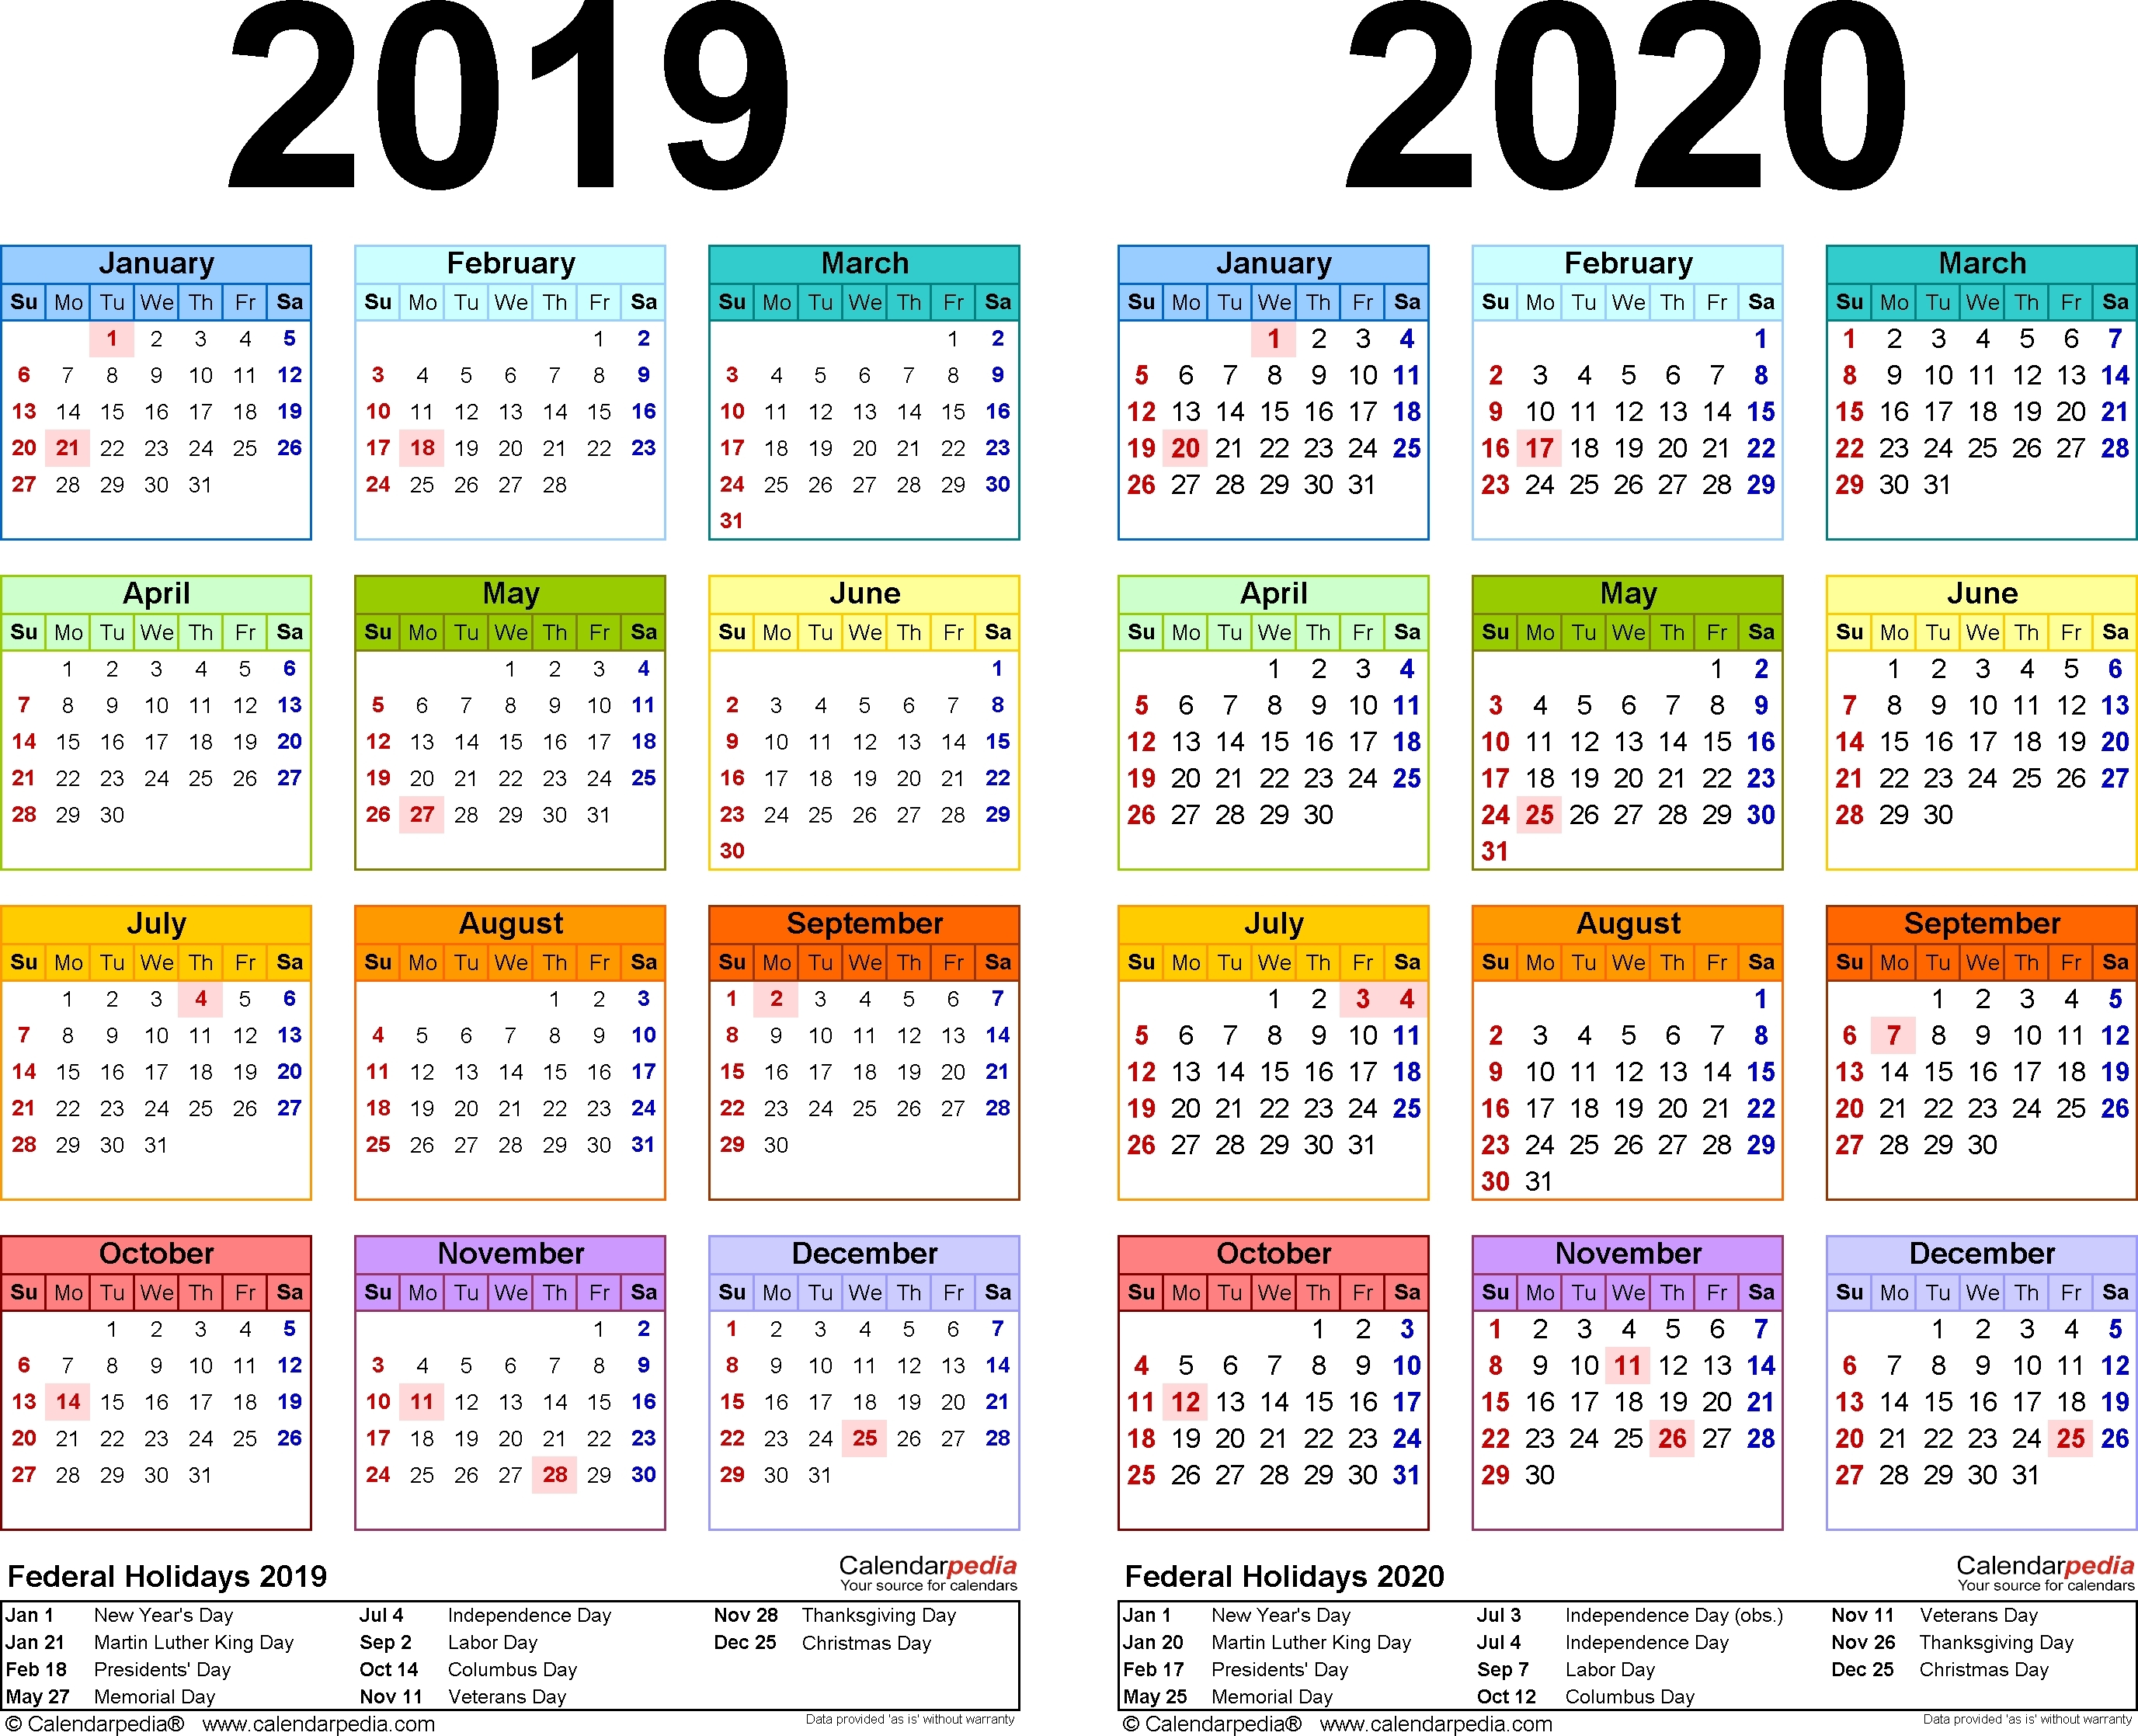 Calendar 365 Holidays 2019 • Printable Blank Calendar Template within Calendar 2019-2020 365